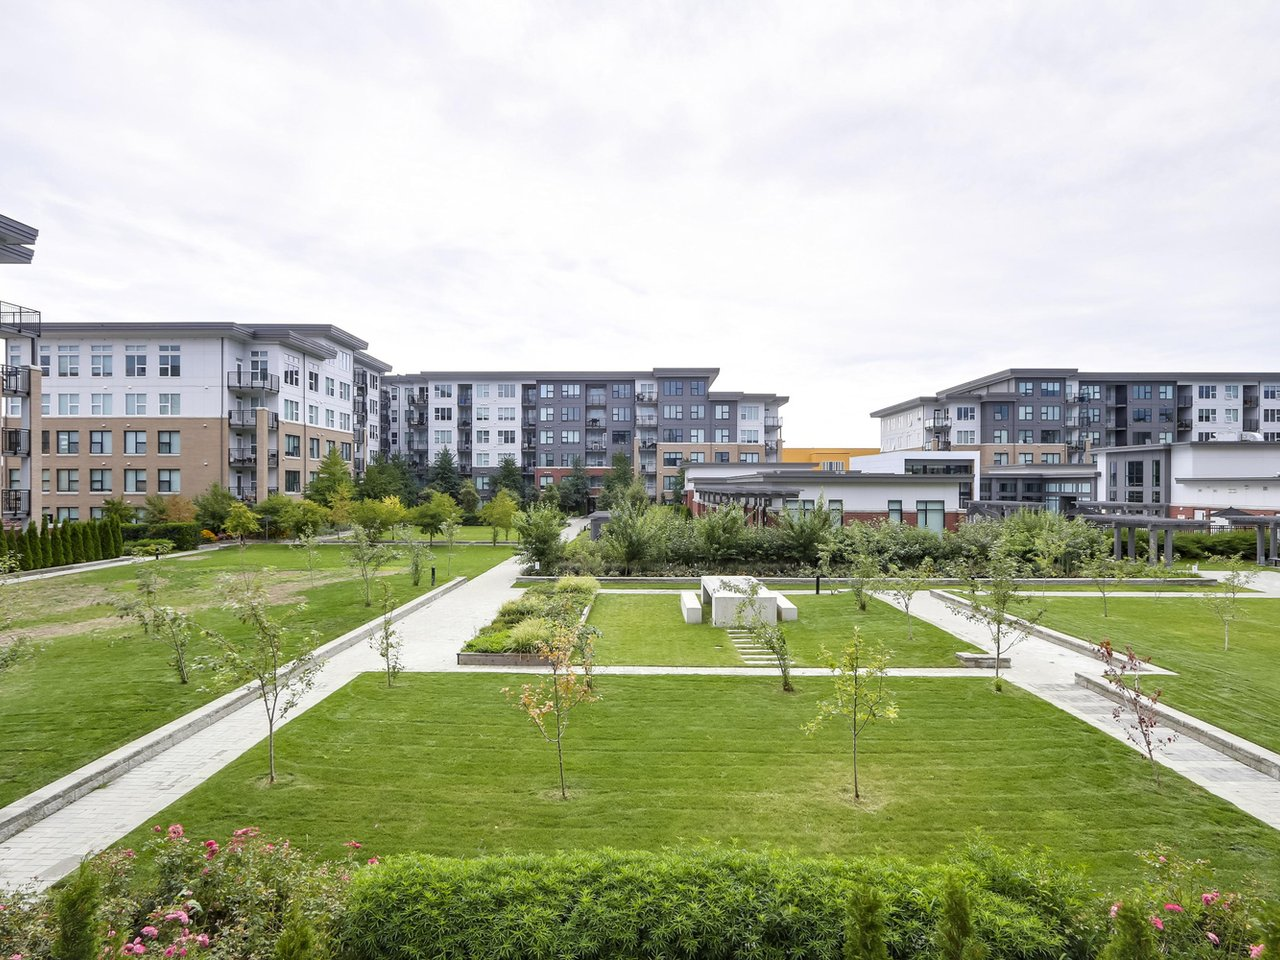 Courtyard View - West Cambie - 9388 Tomicki Avenue, Richmond, BC, Canada